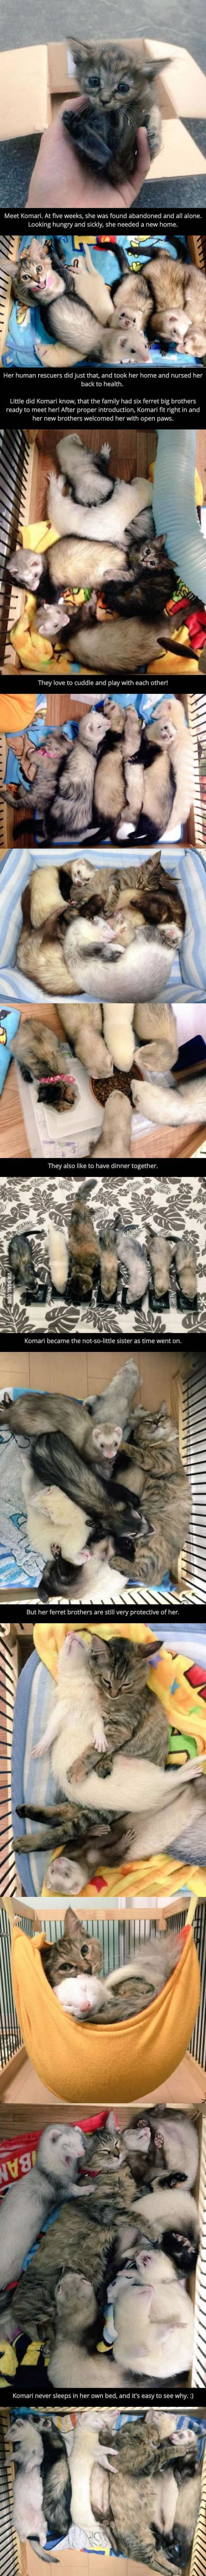 Cute five month old kitten adopted and taken in by adorable baby ferret family